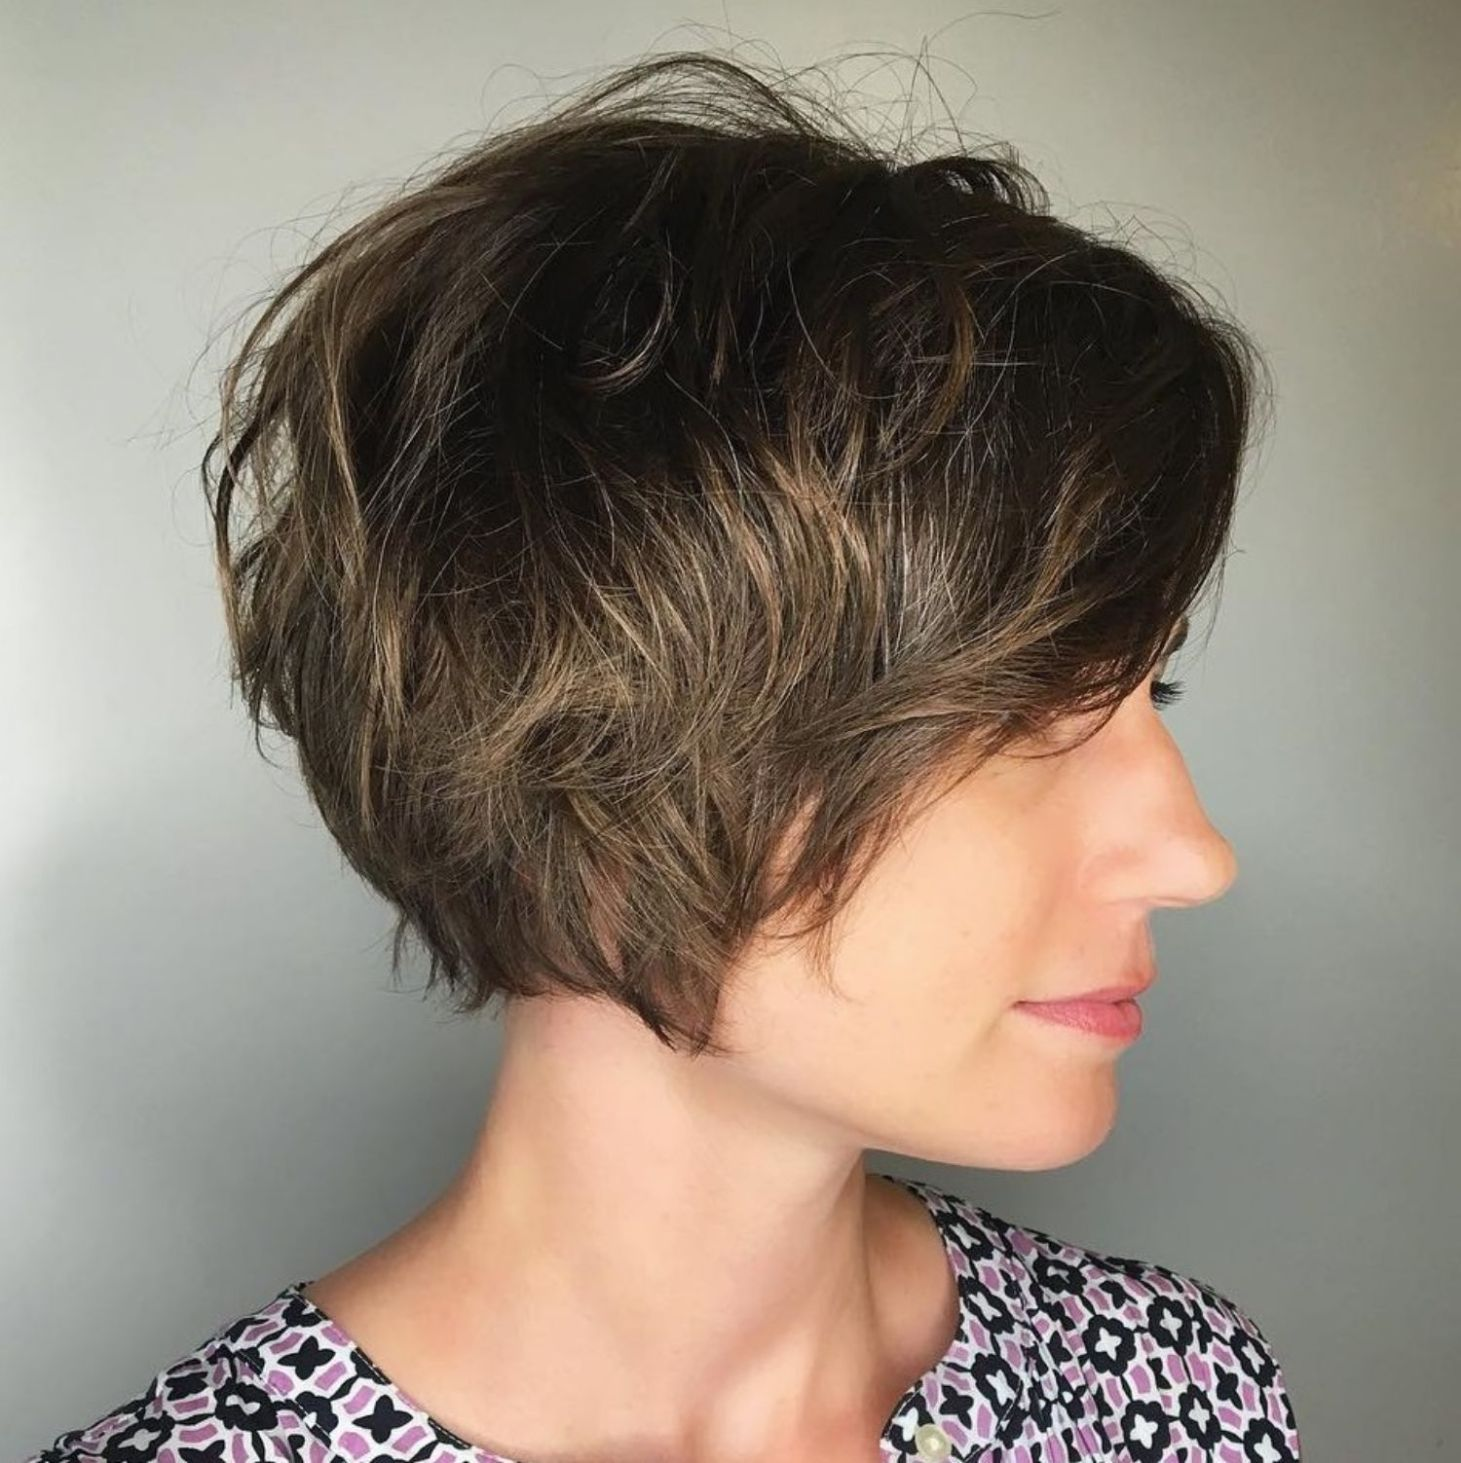 60 Classy Short Haircuts And Hairstyles For Thick Hair Short Hairstyles For Thick Hair Thick Hair Styles Coarse Hair Treatments